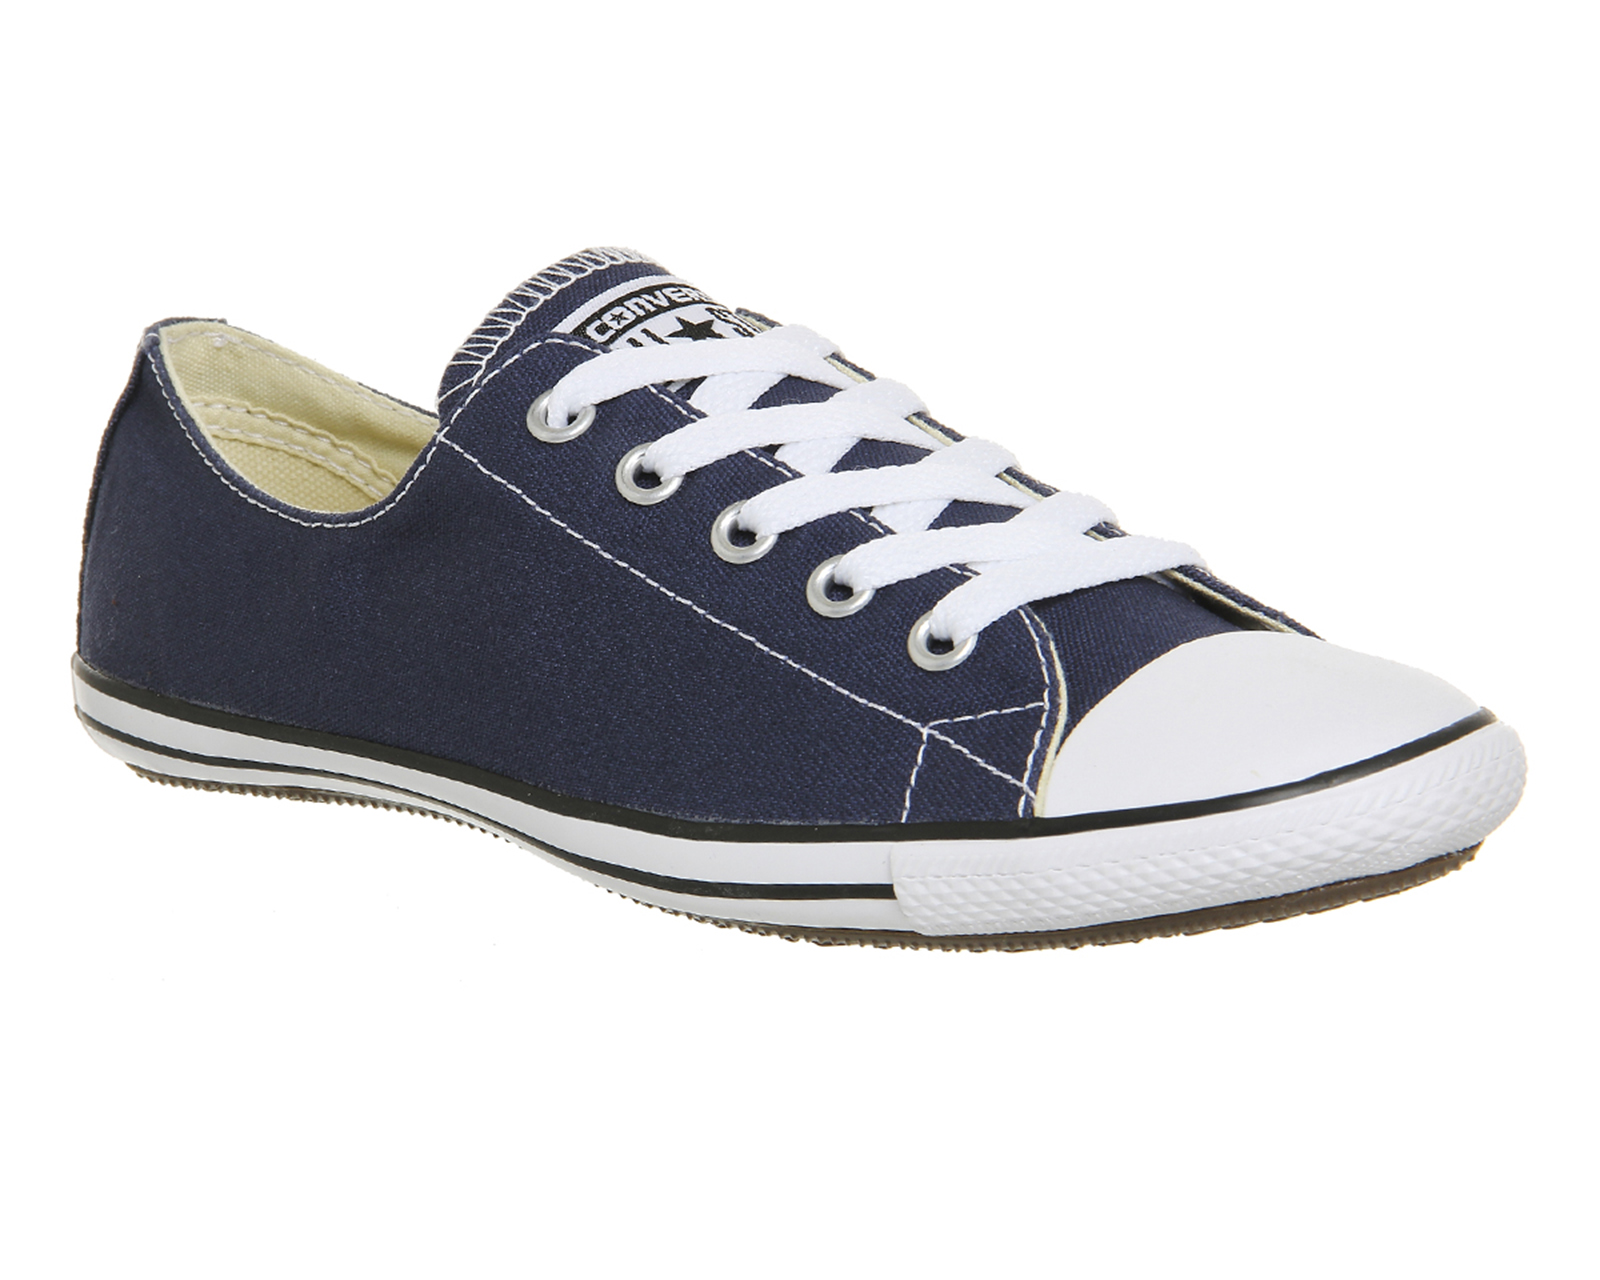 Womens-Converse-Ct-Lite-2-NAVY-Trainers-Shoes